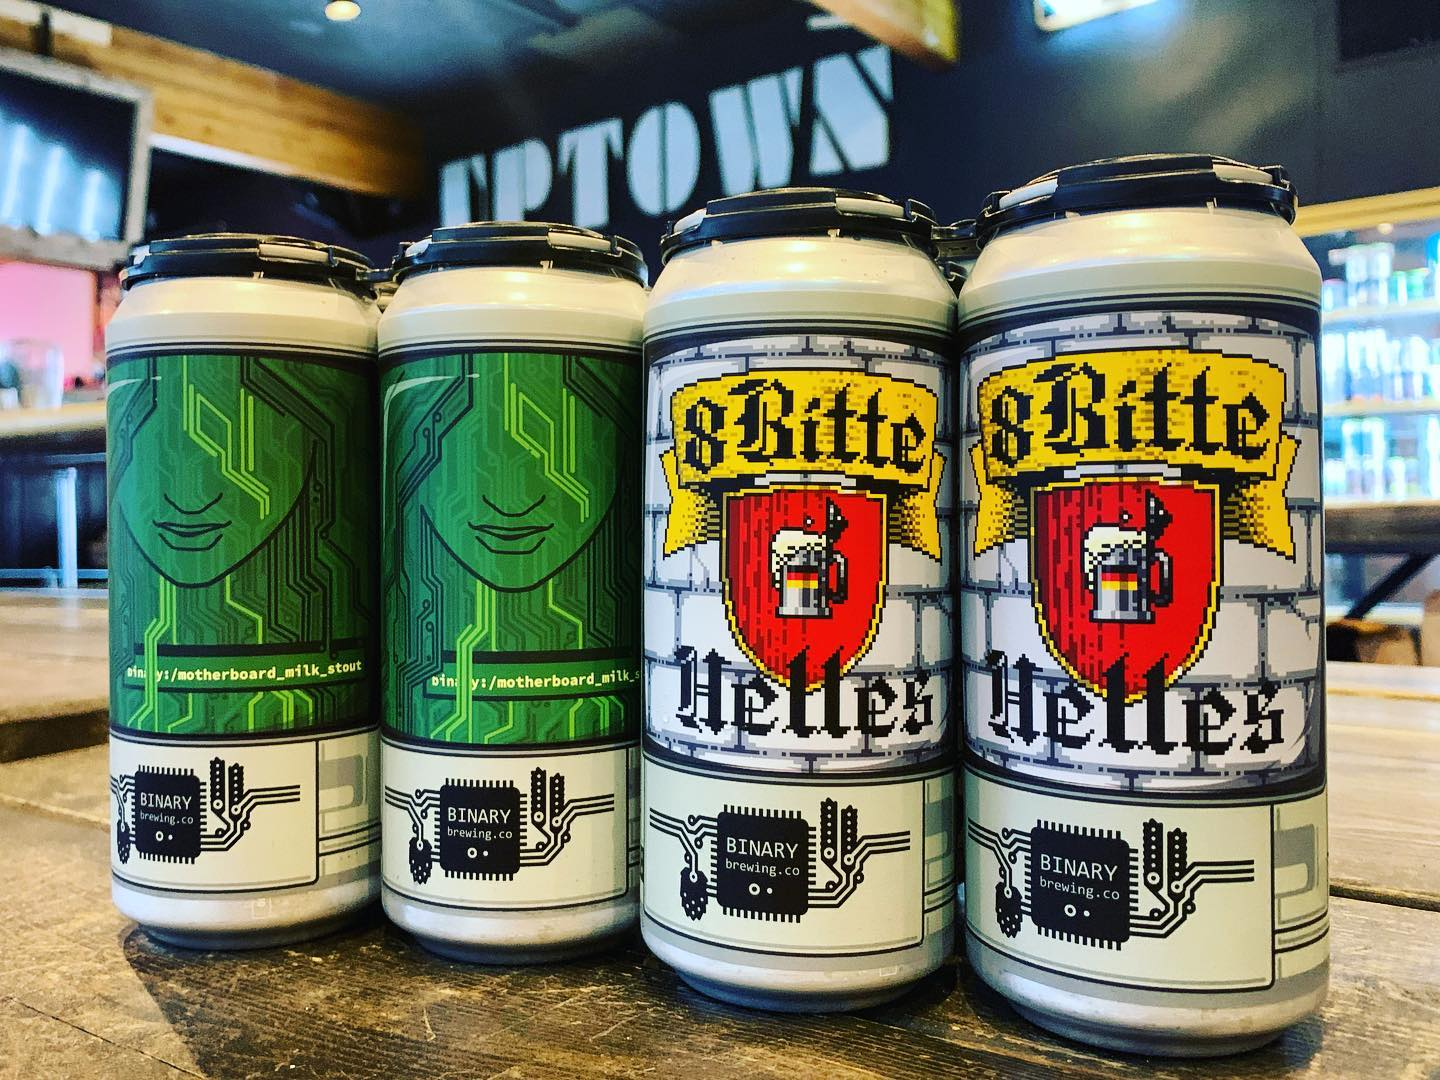 image of 8-Bitte Helles Lager + Motherboard Milk Stout courtesy of Binary Brewing